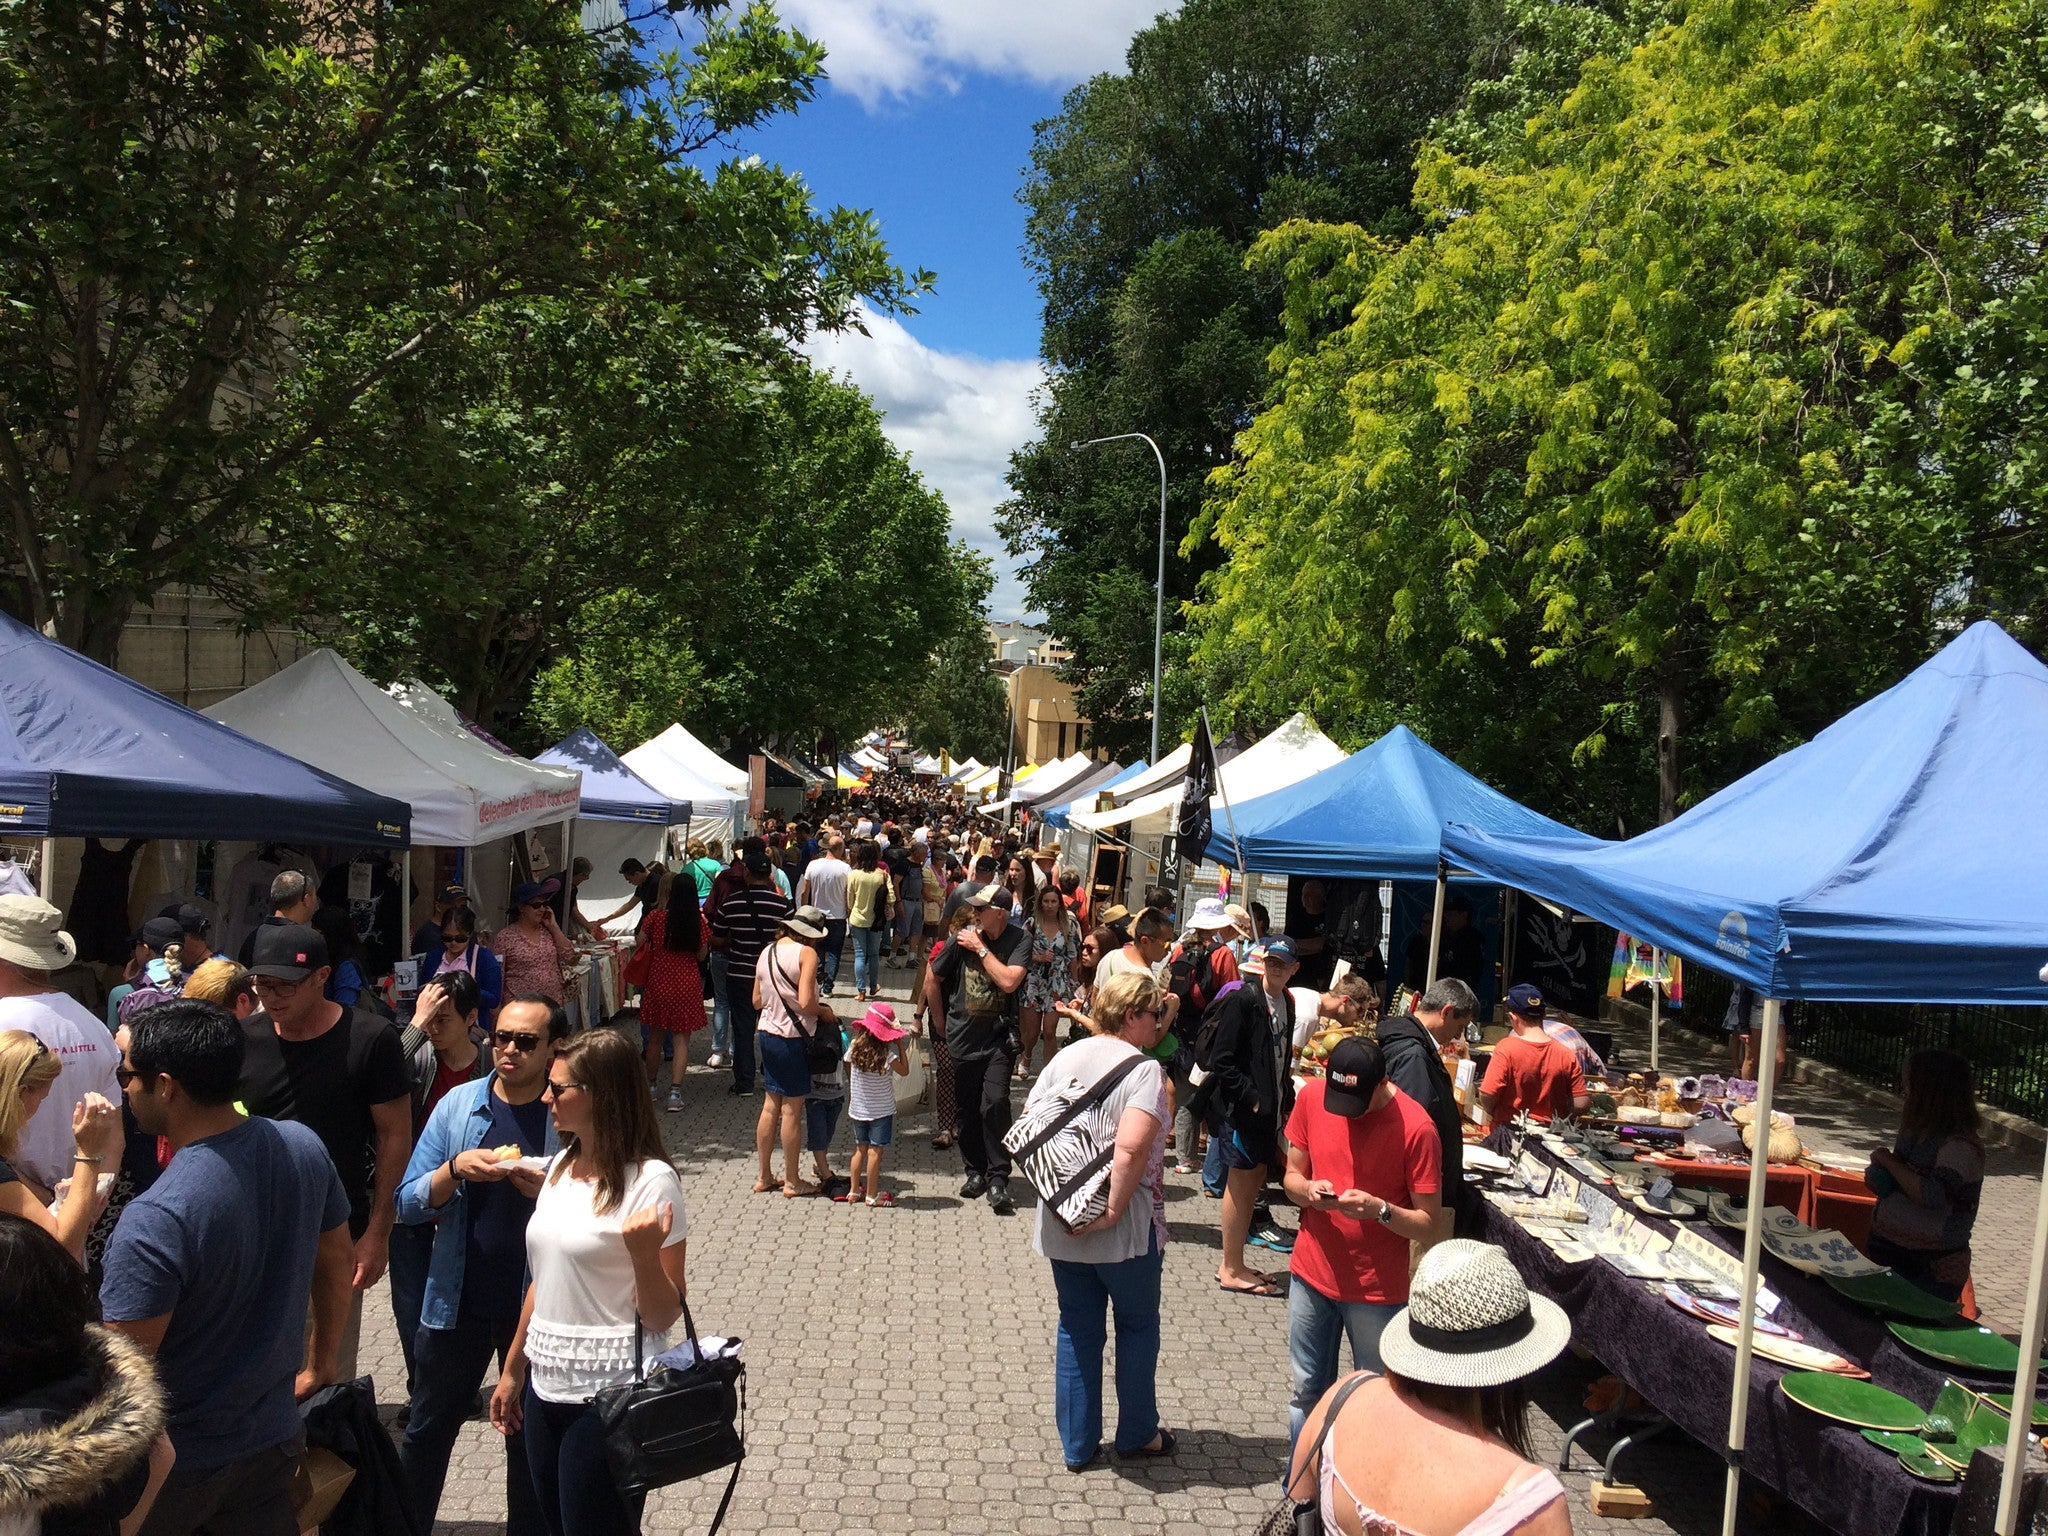 Hobart and Home Again: Markets